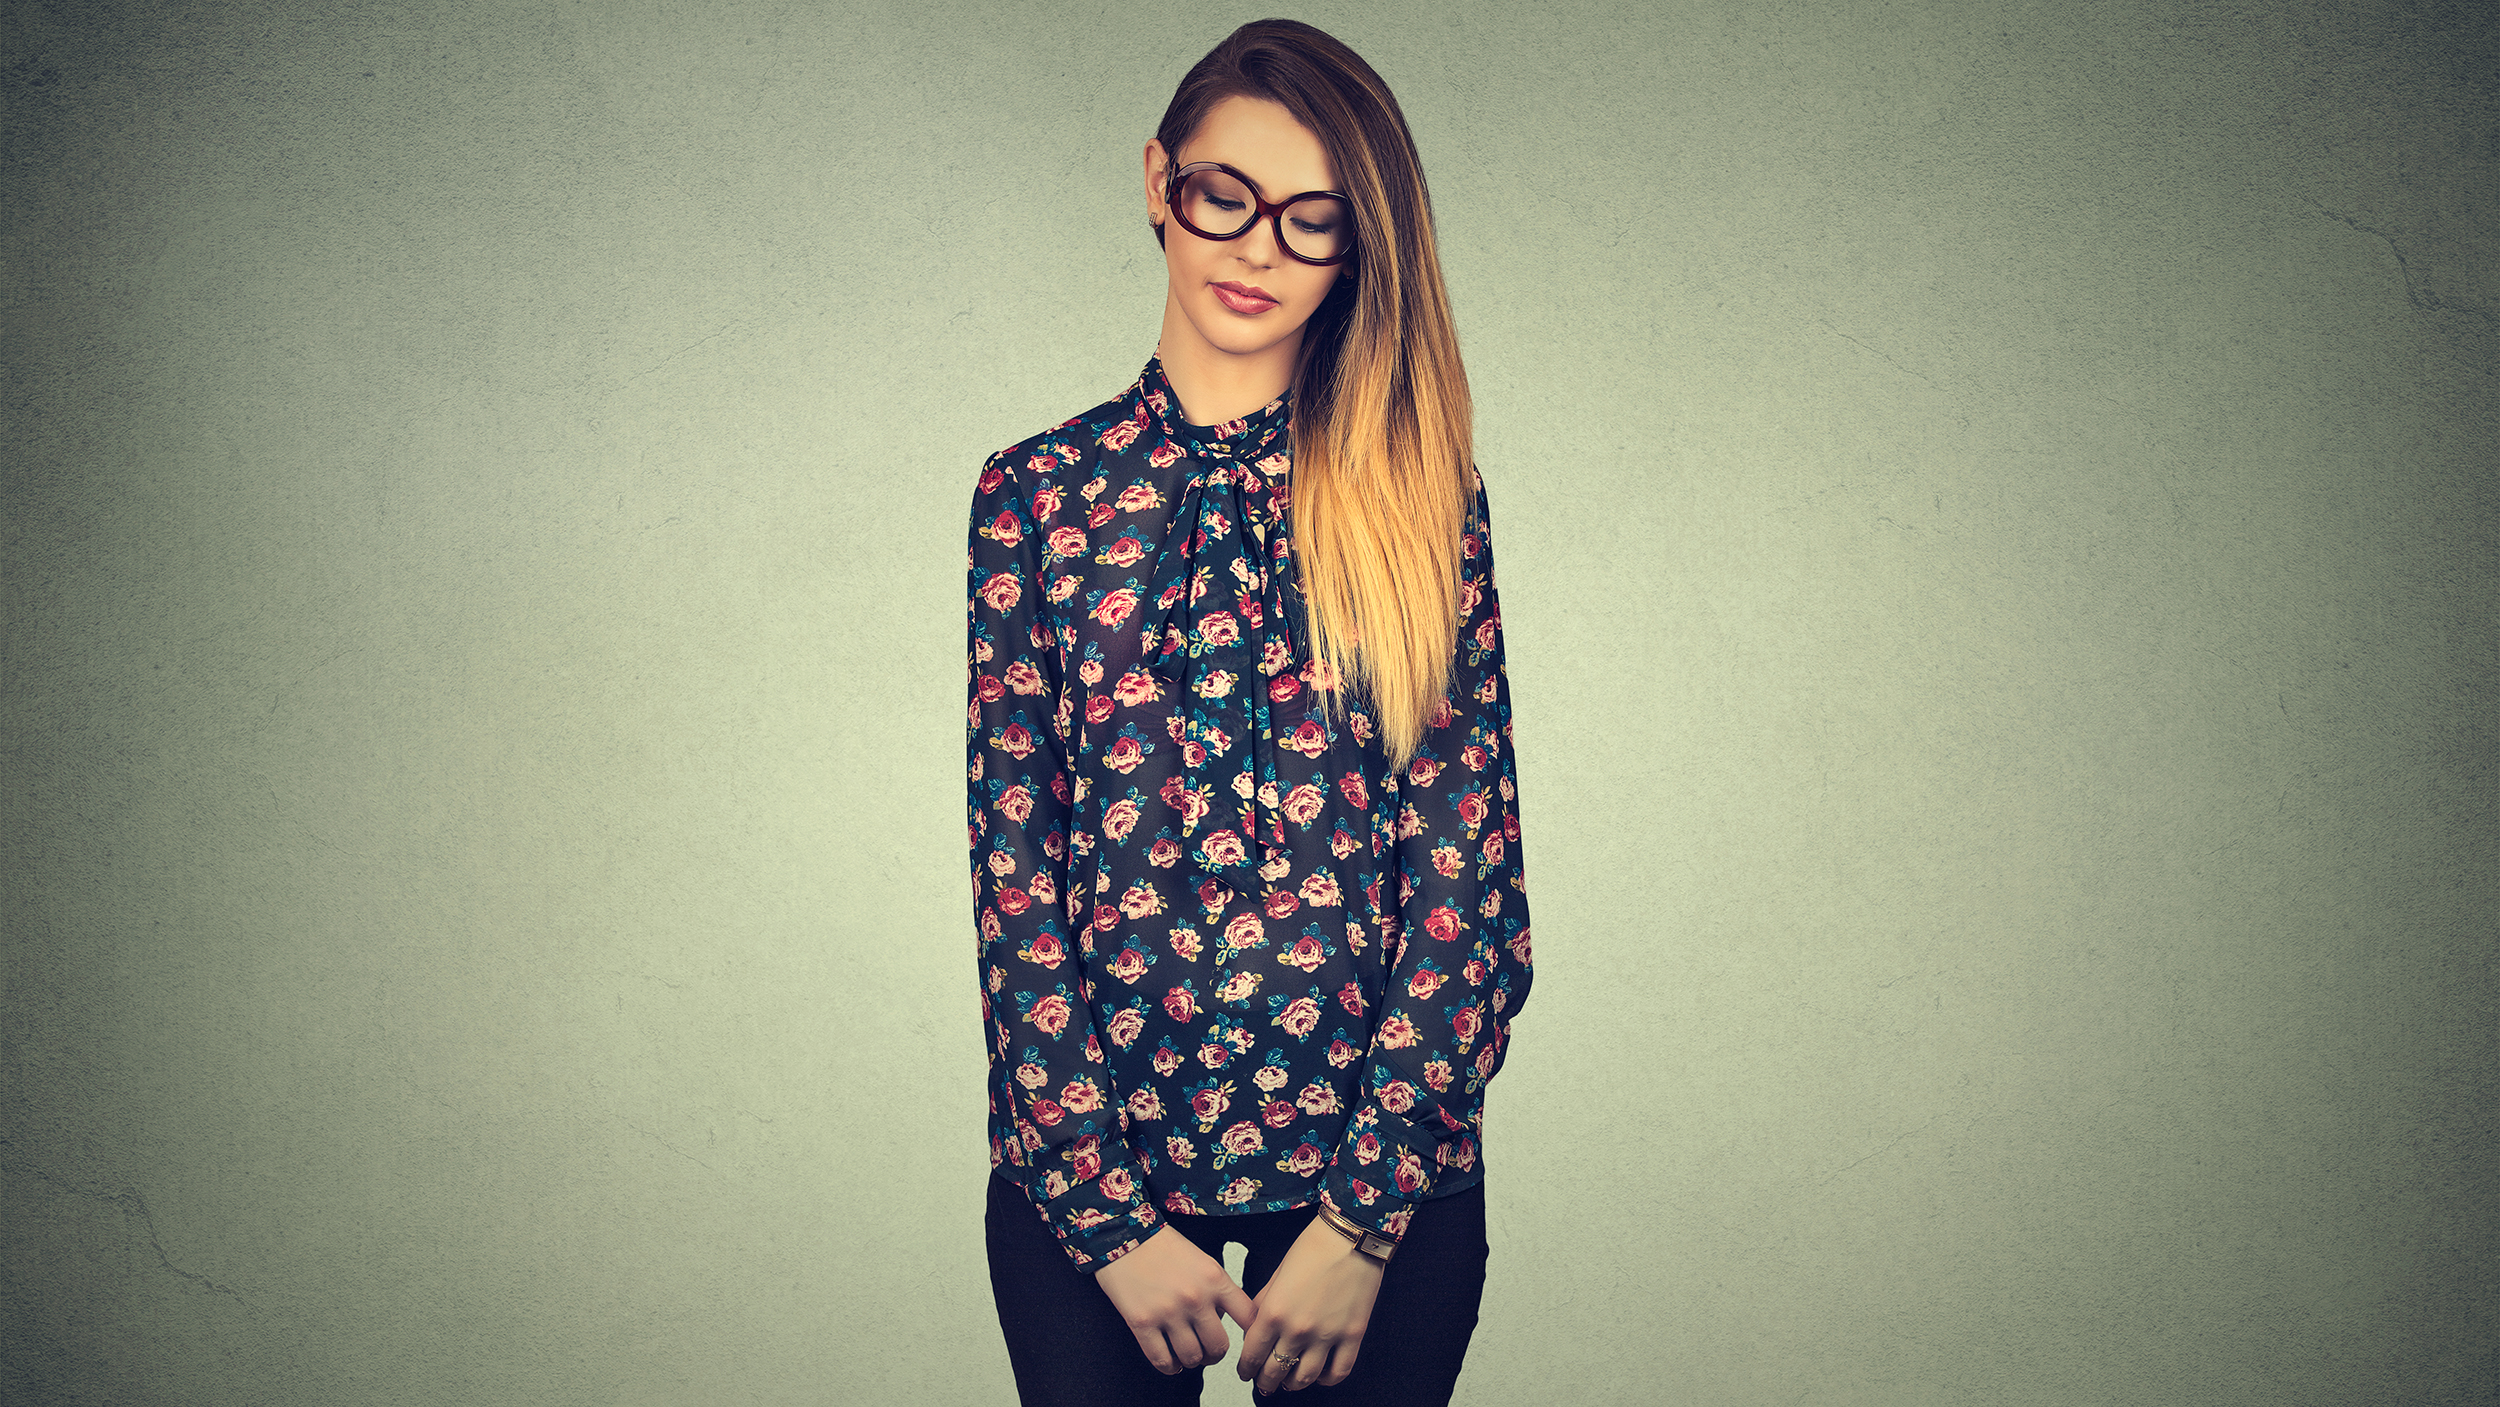 Sad shy insecure young woman in glasses looking down avoiding eye contact standing isolated on gray wall background ; Shutterstock ID 396678355; PO: today.com